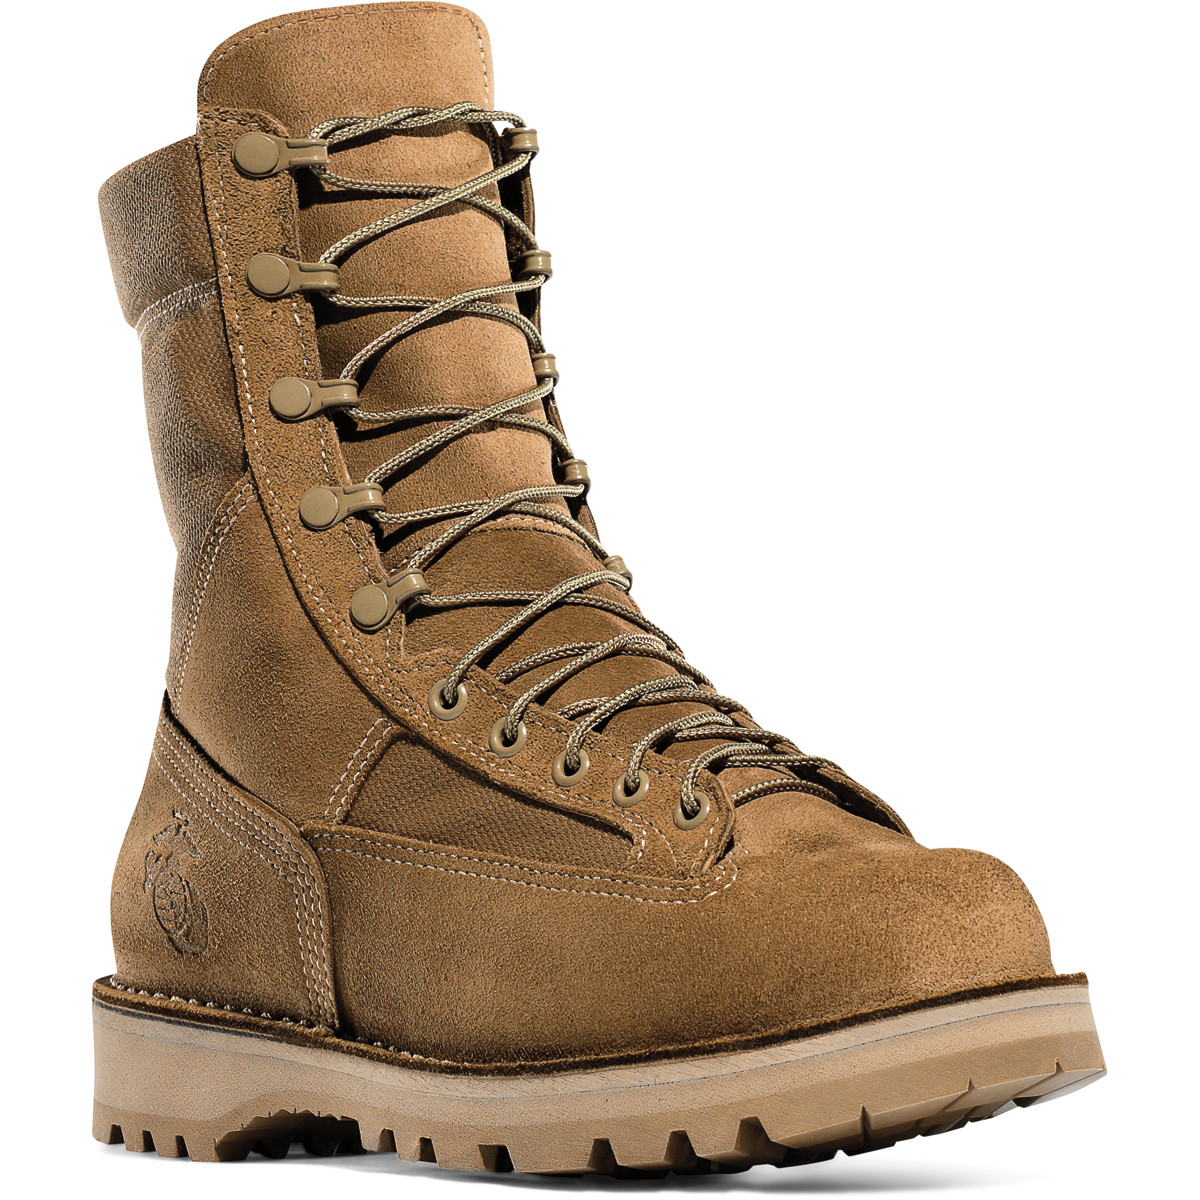 Danner Boots | Lowest Prices & Free Shipping